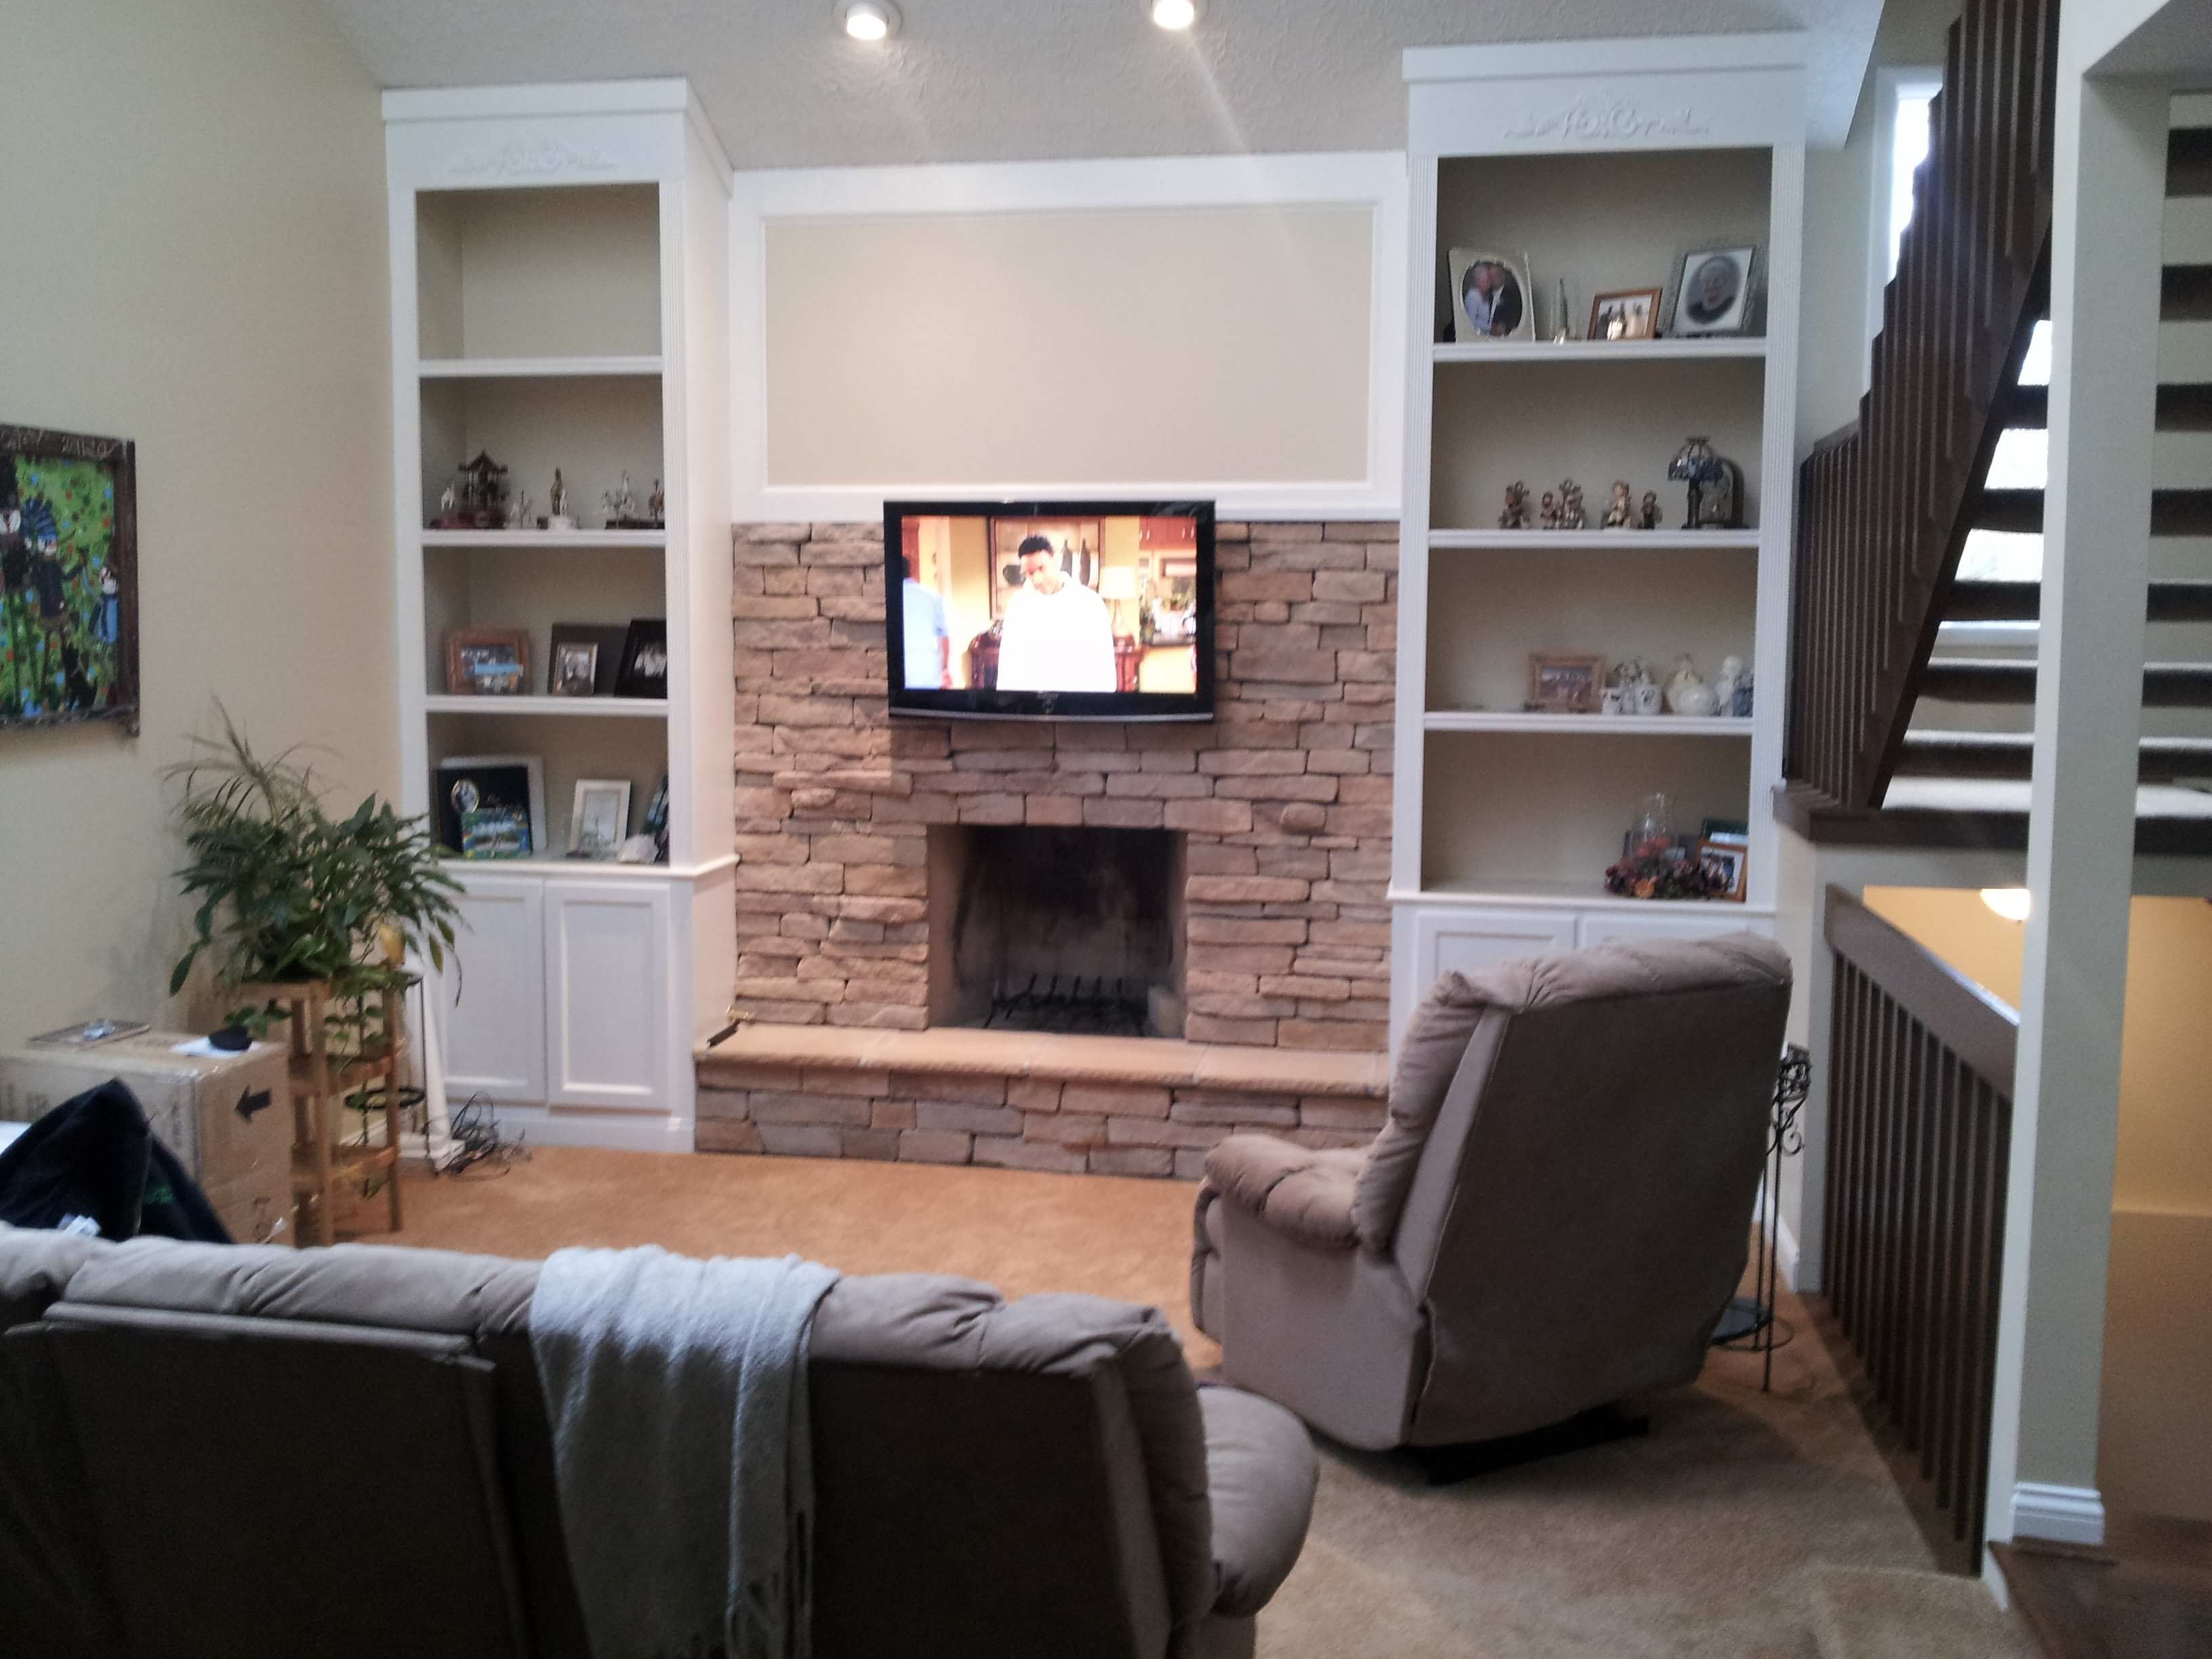 Tv On Stone Wall Over Fireplace All Wires Concealed To Components